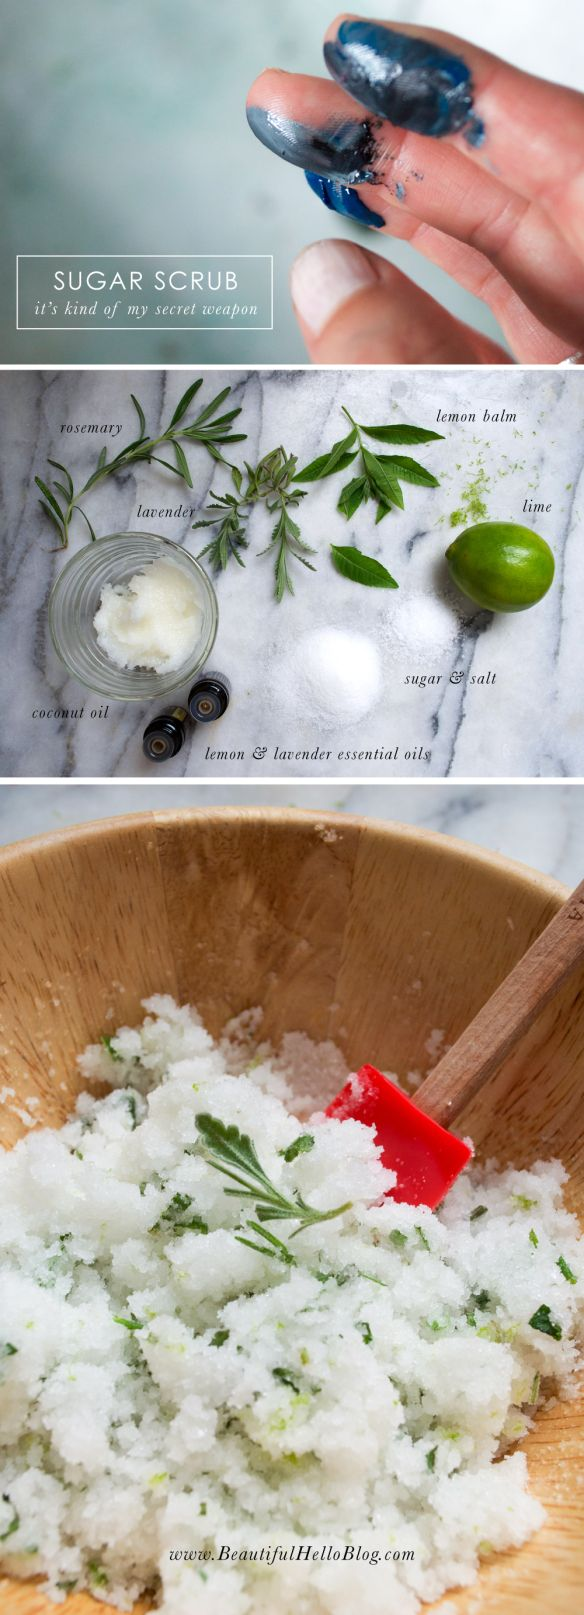 best sugar scrubs images on pinterest diy scrub beauty tips